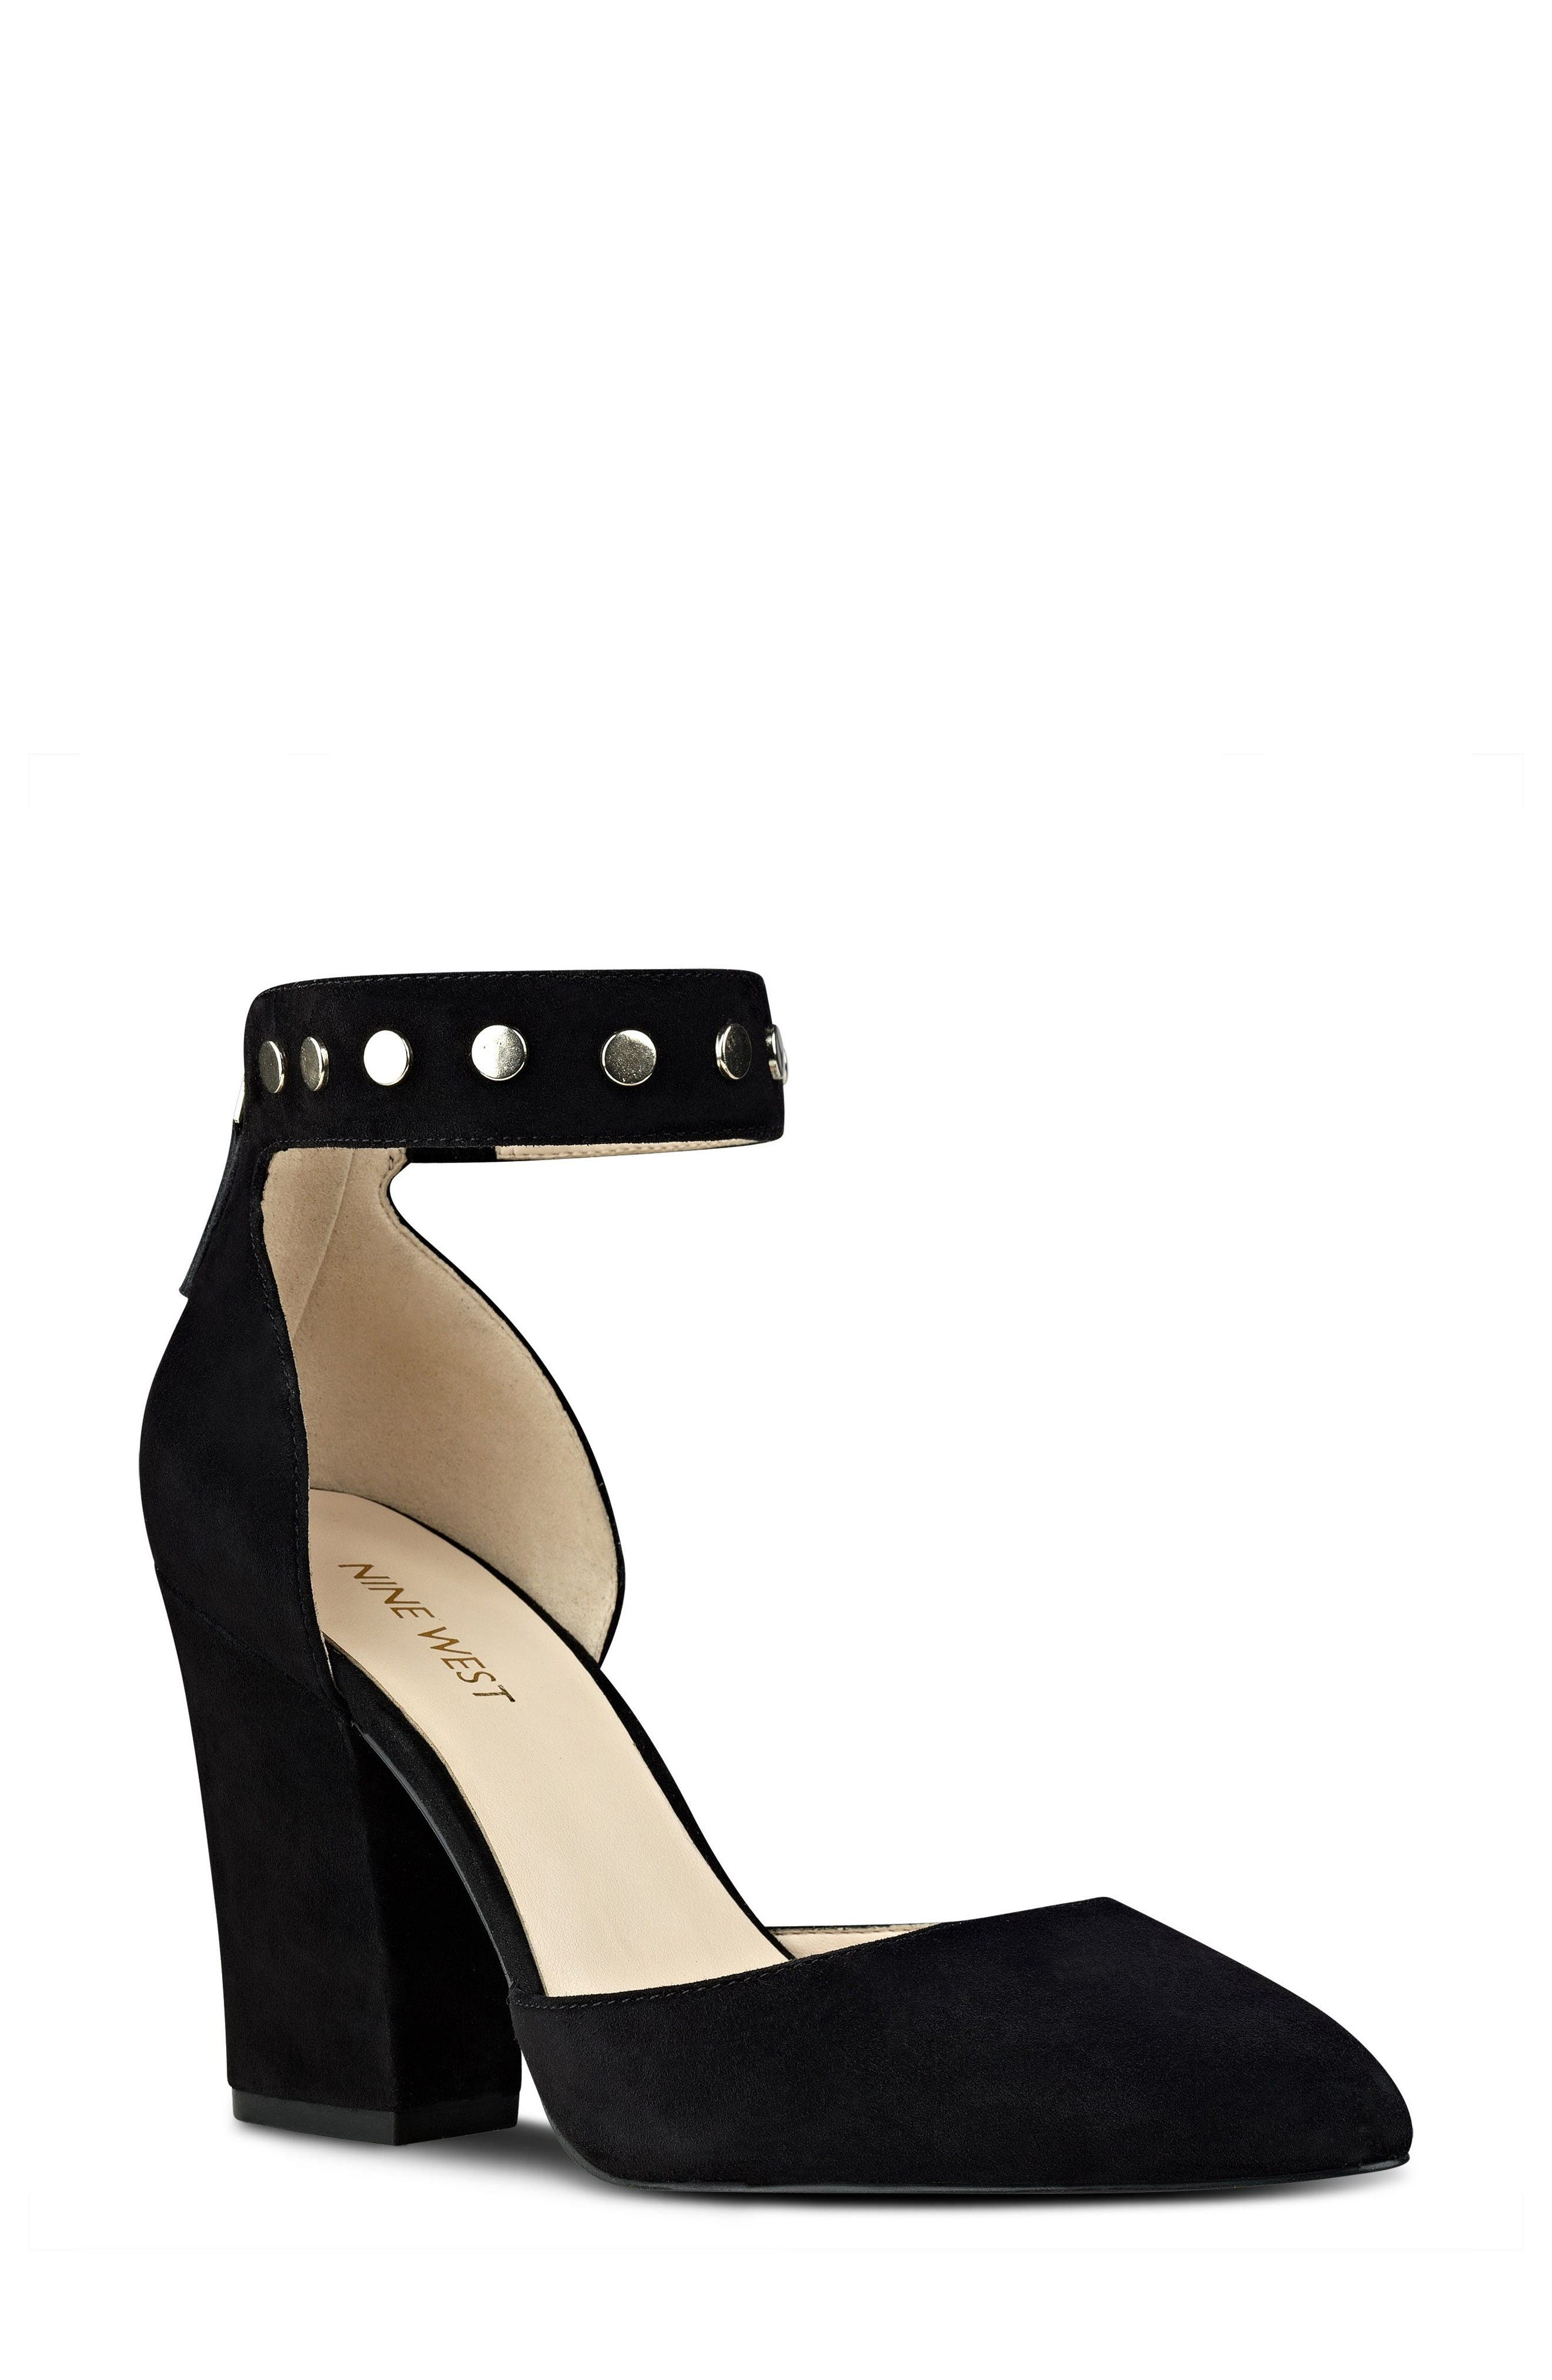 Main Image - Nine West Sharmain Pump (Women)